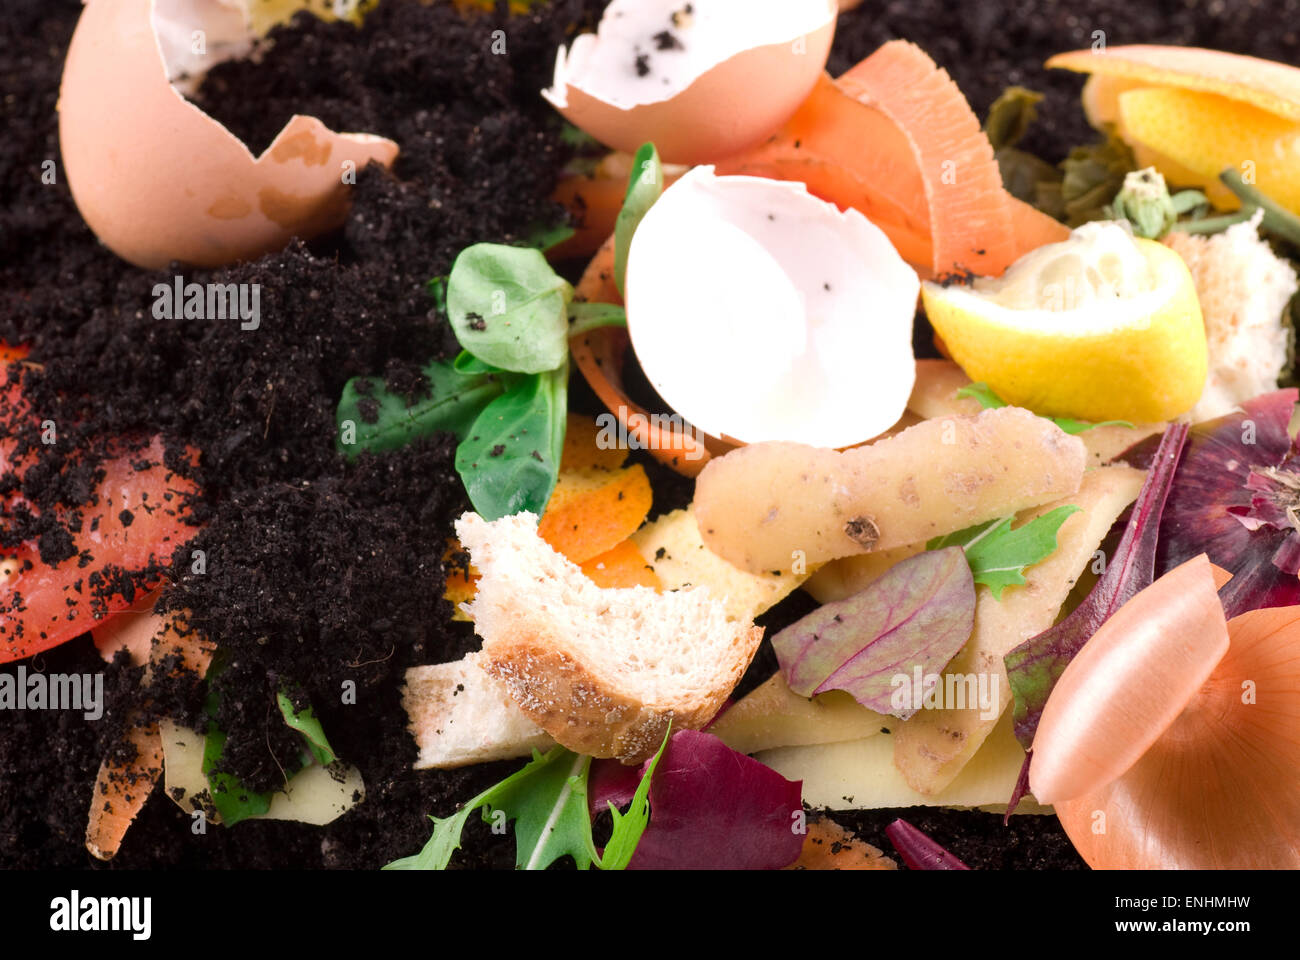 Compost material on soil. Cross section.  Close up. - Stock Image